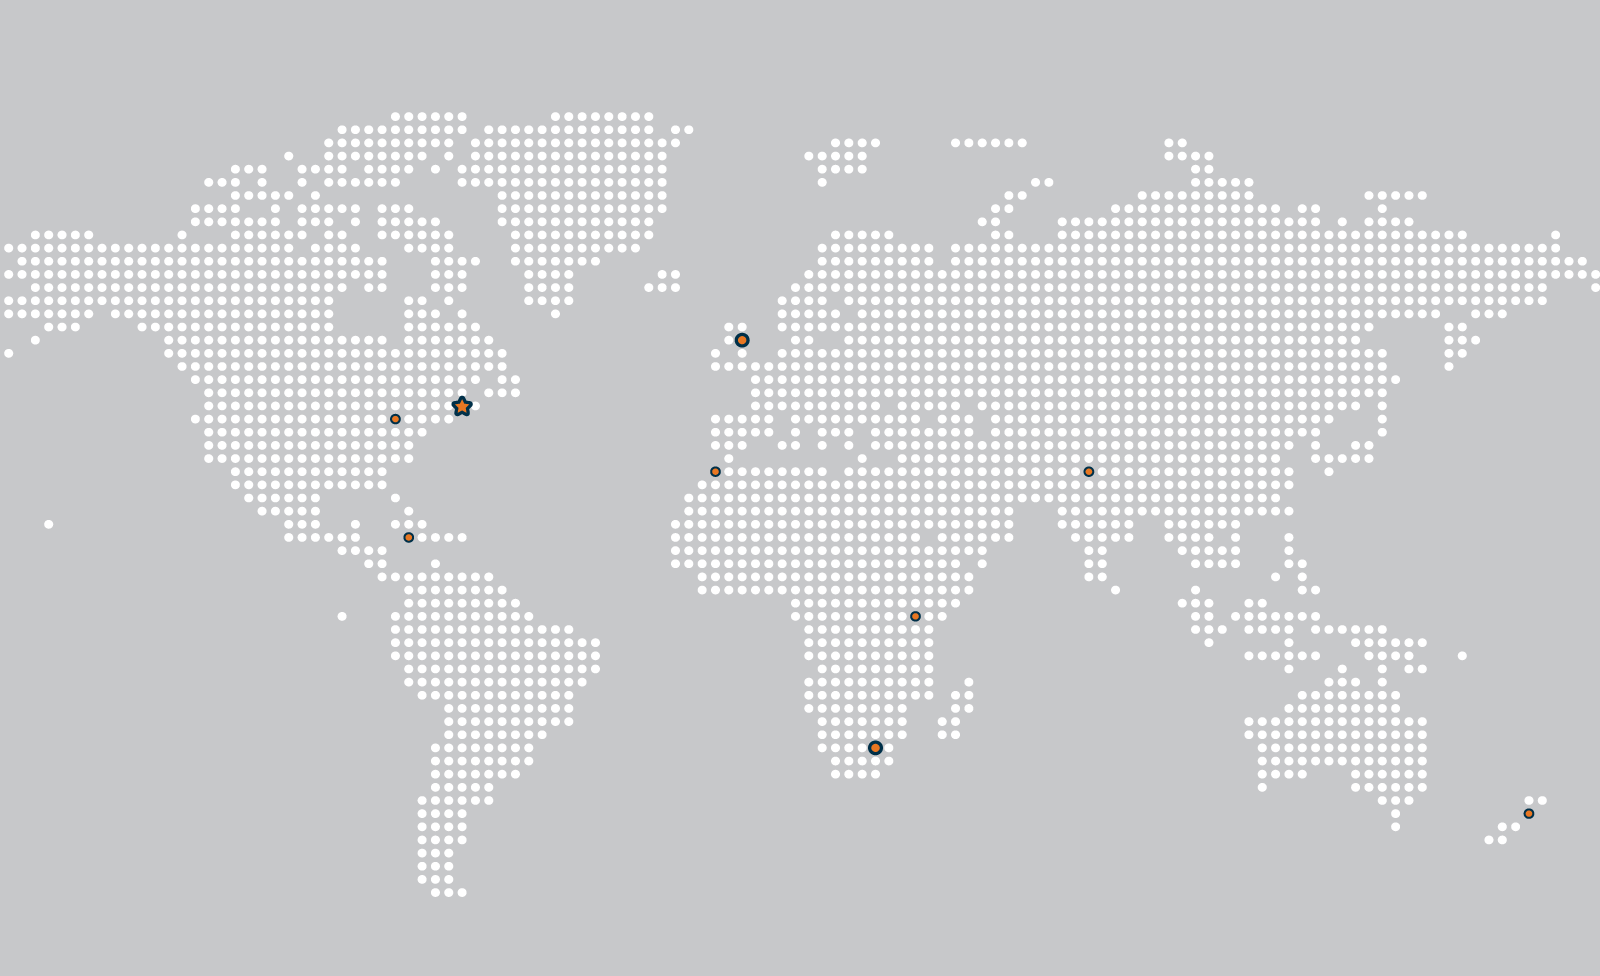 map of the world outlining Maplewave offices in Canada, United Kingdom, South Africa, Morocco, Jamaica, Kenya and New Zealand